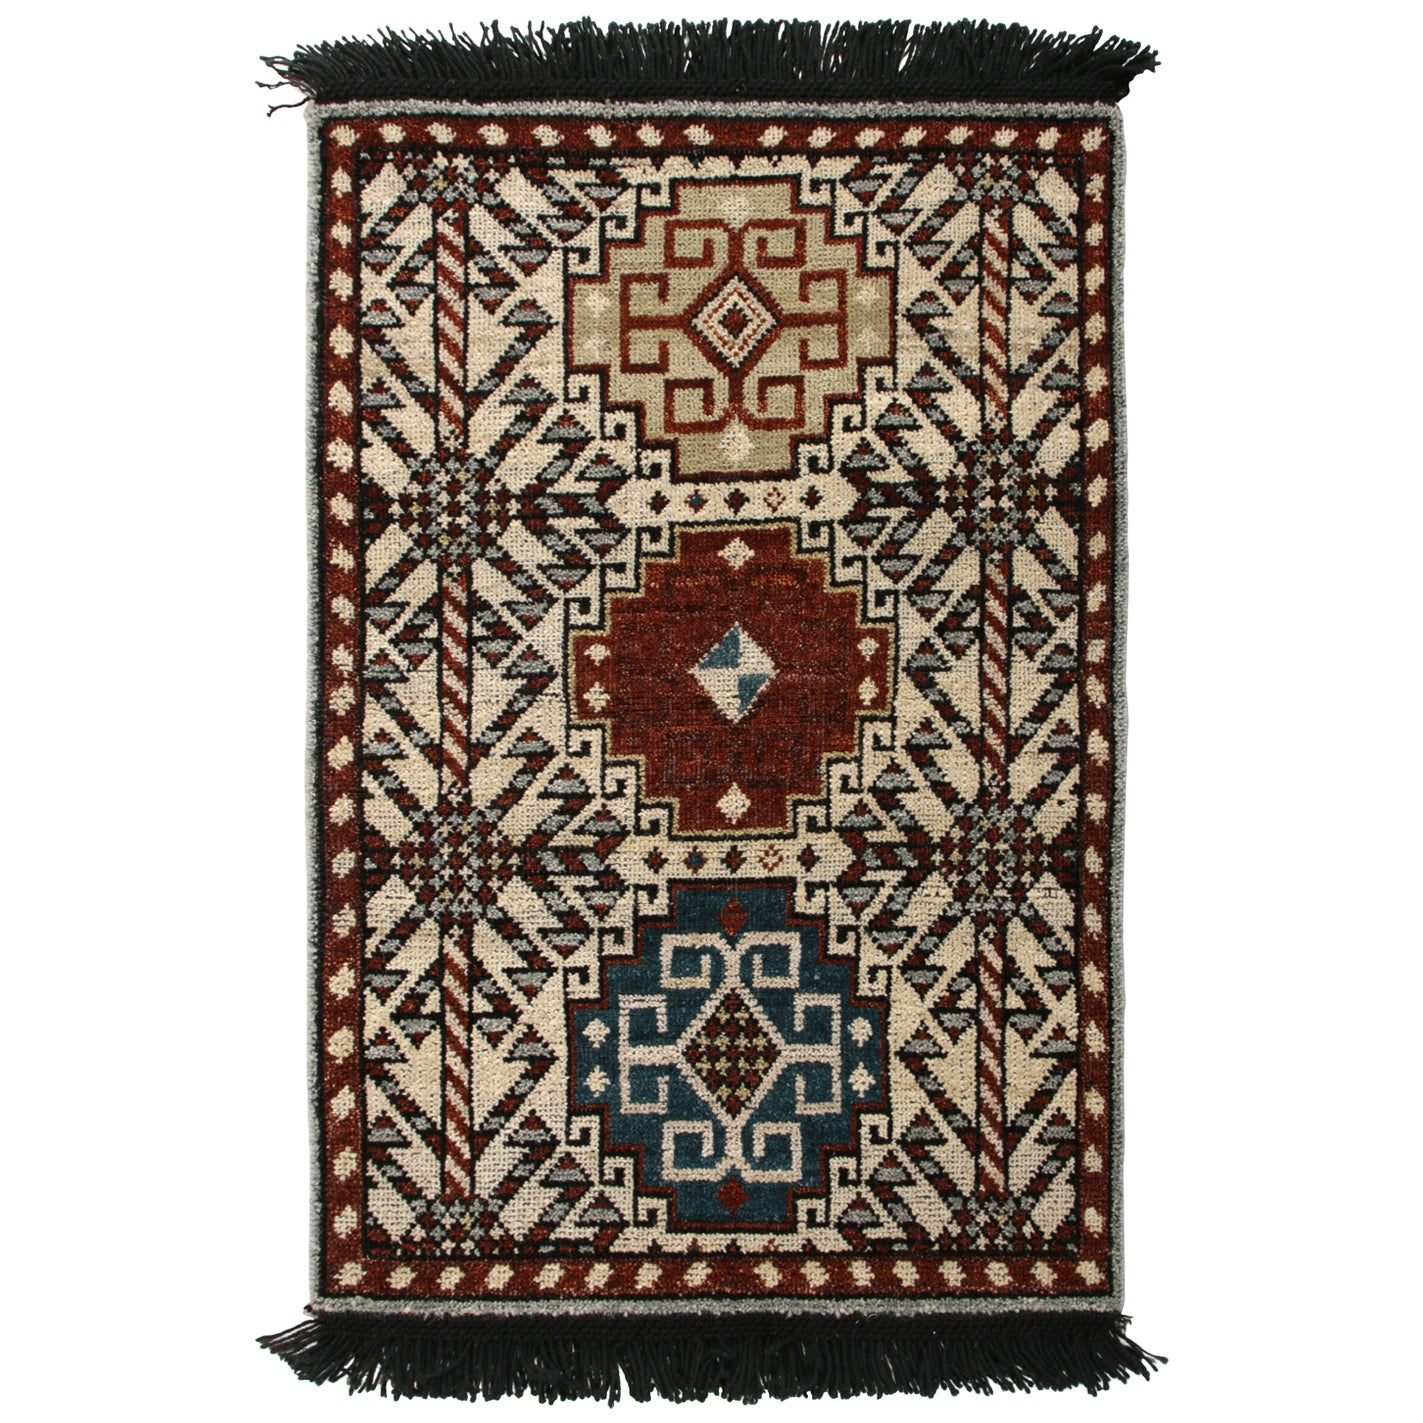 Hand Knotted Qashqai Style Rug in Beige Red Geometric Pattern by Rug & Kilim